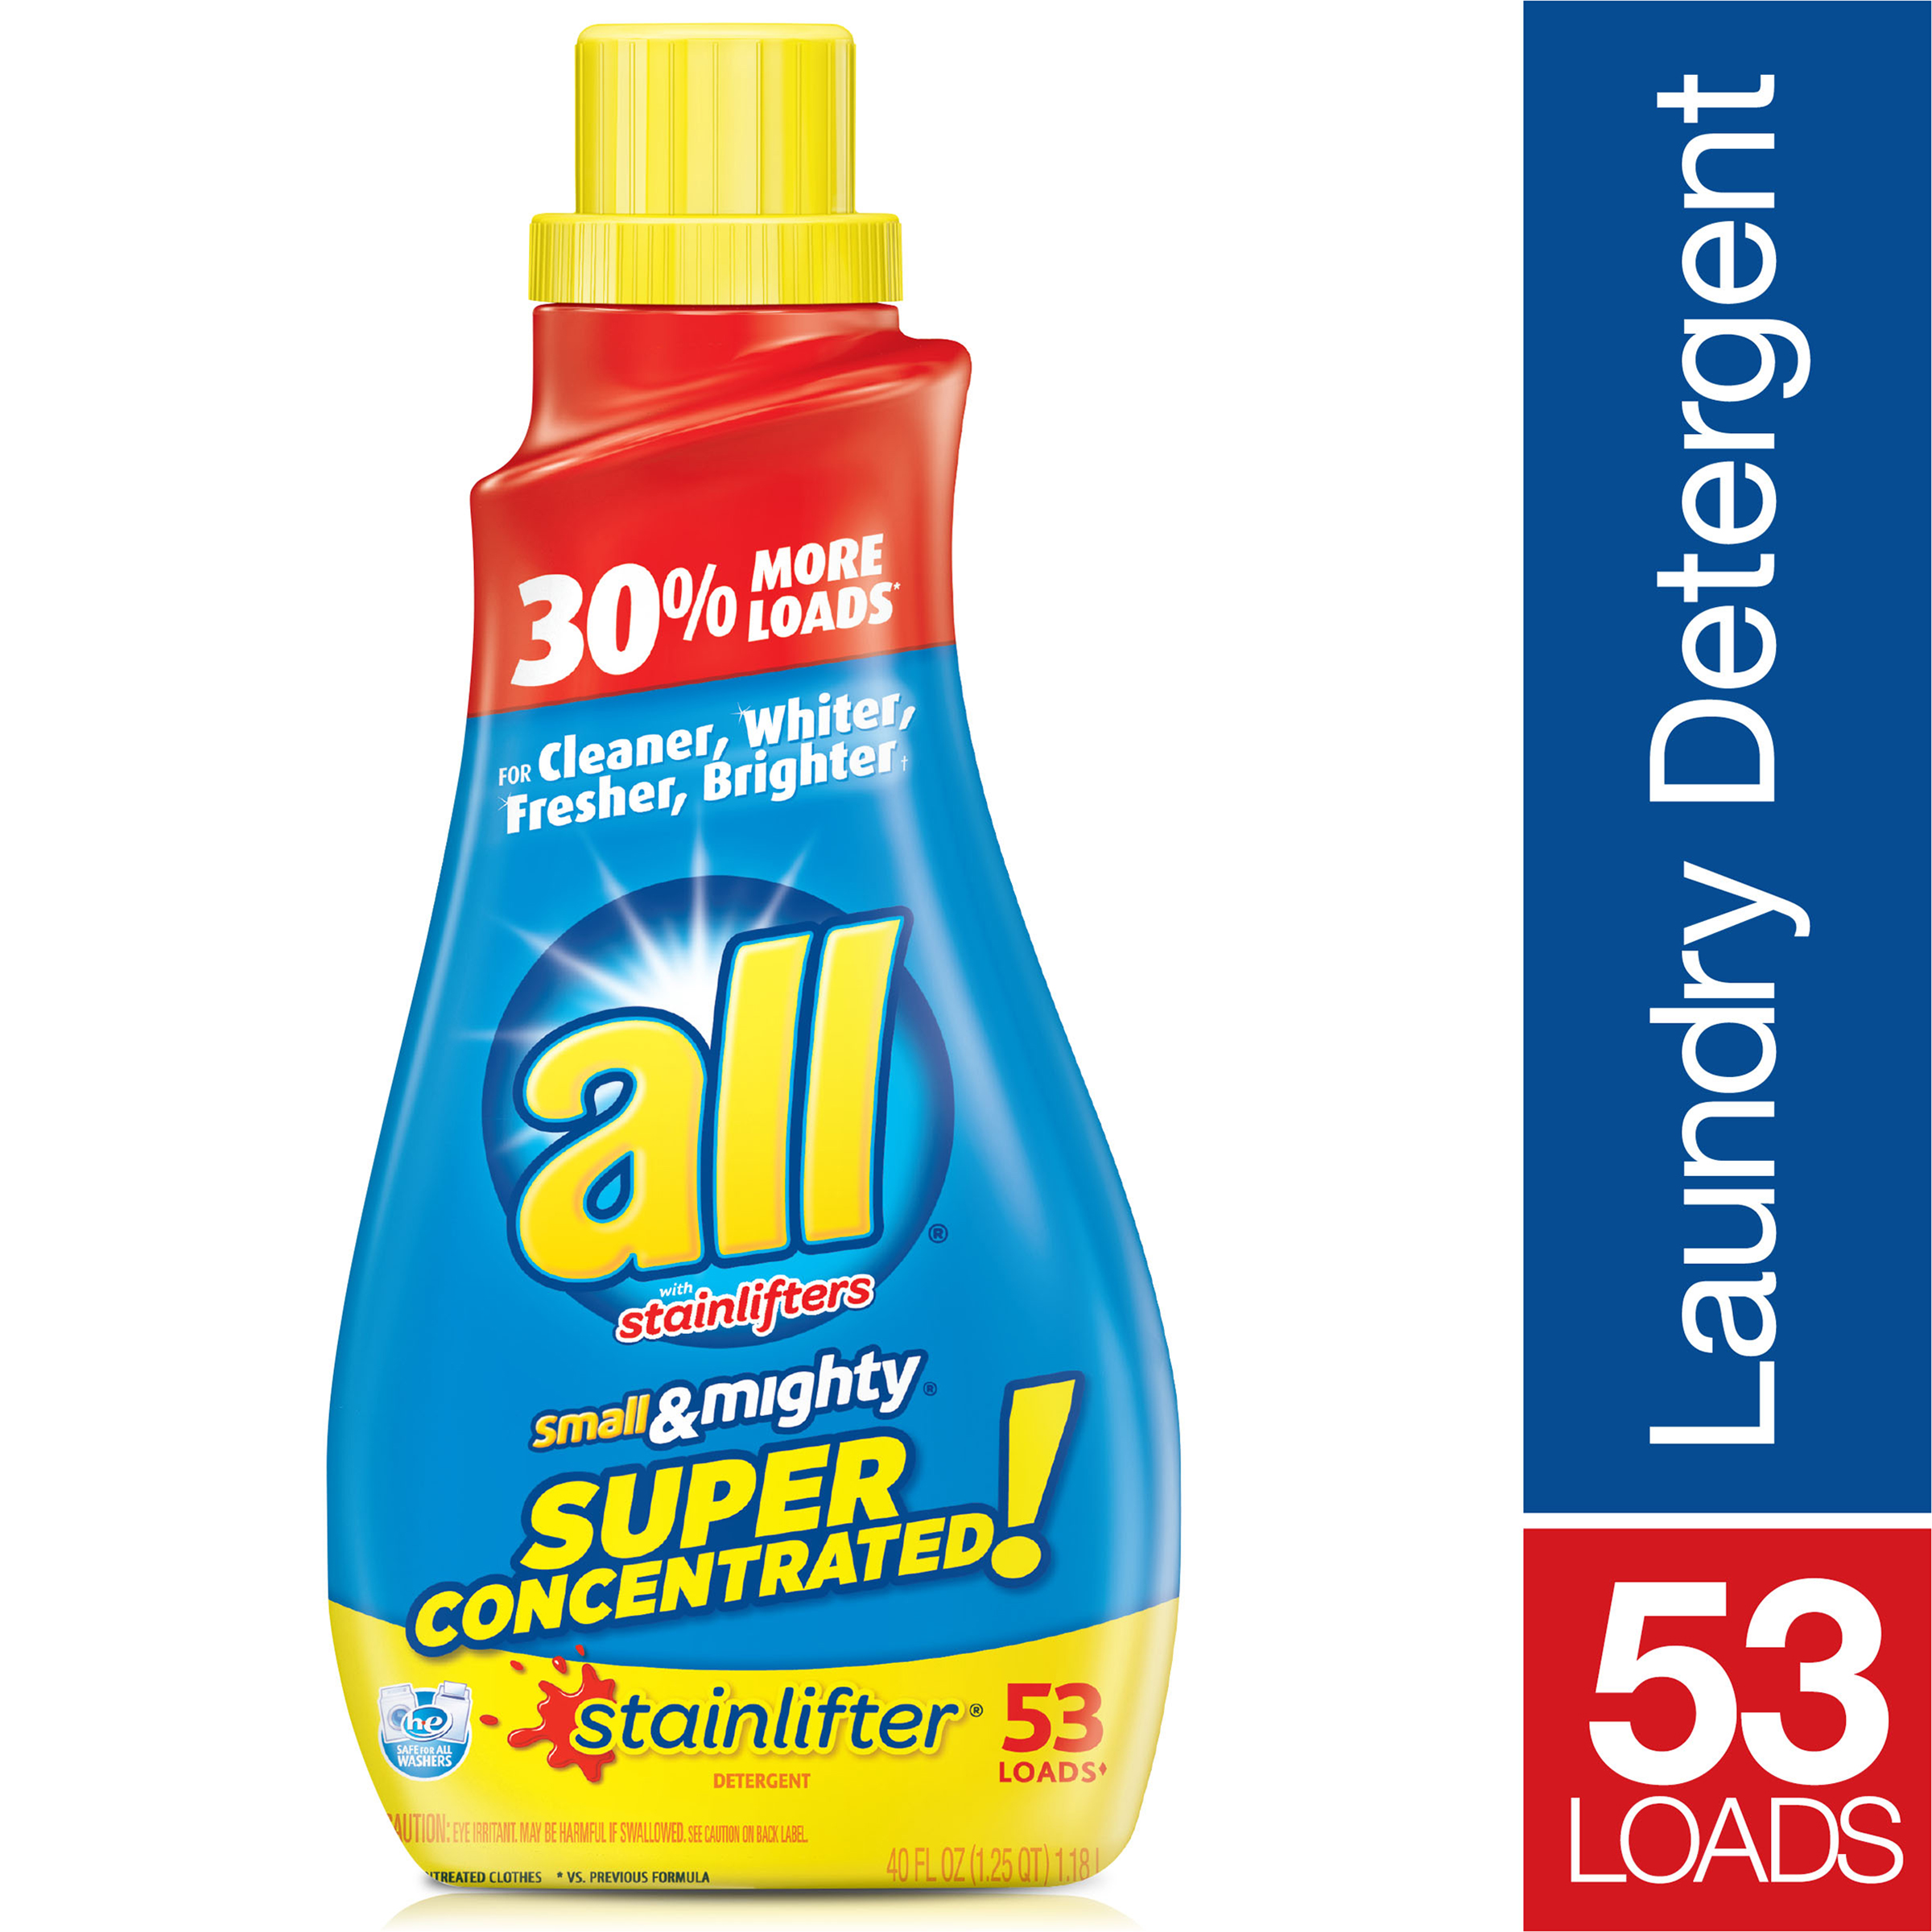 bd48c5927 all Small & Mighty Super Concentrated Liquid Laundry Detergent,  Stainlifter, 40 Fluid Ounces, 53 Loads - Walmart.com